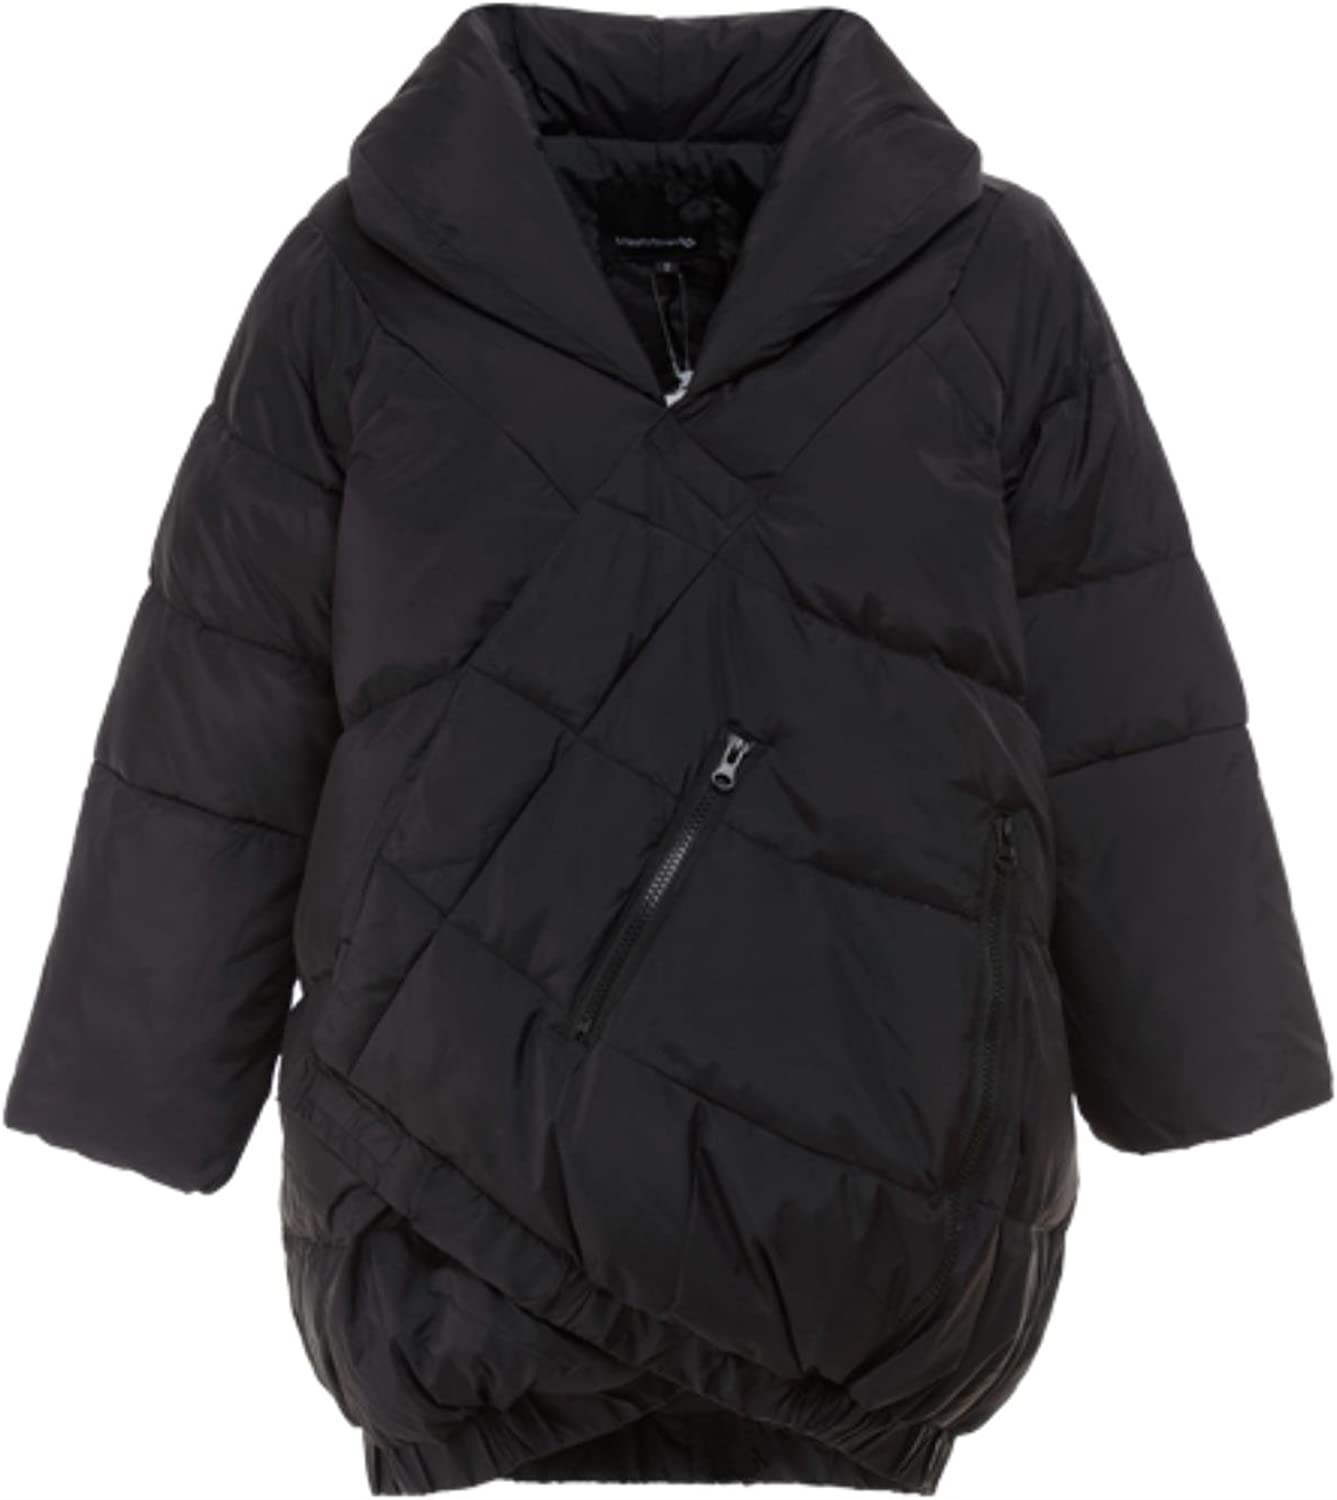 European Fashion Week Catwalk Long Section Black and White Mix color Pregnant Thick Warm Down Jacket